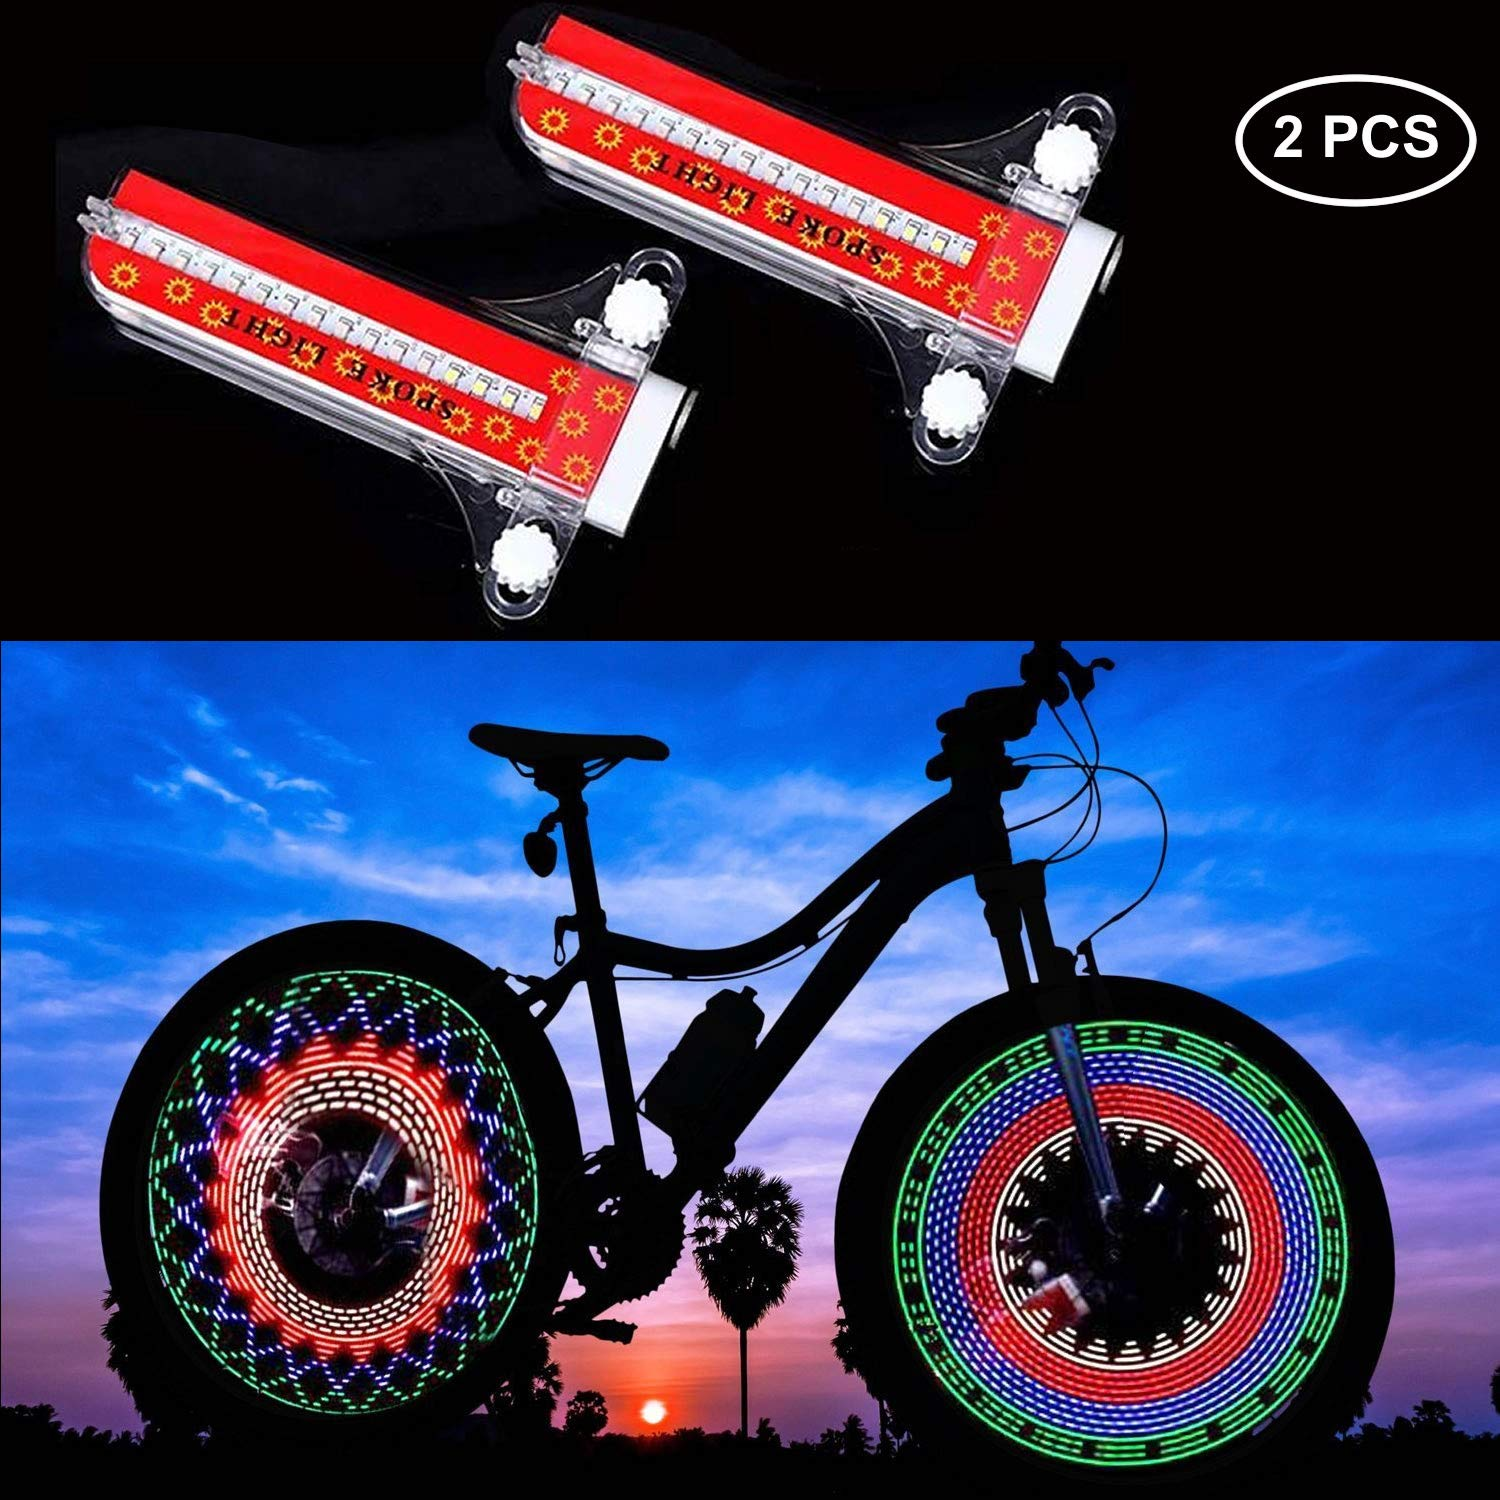 MIKIROY 2 PCS LED Bike Spoke Lights, Waterproof Bicycle Wheel Tire Light, 32-LED and 32 Changes Patterns, Ultra Bright, Visible from All Angles, Automatic & Manual Dual Switch by MIKIROY